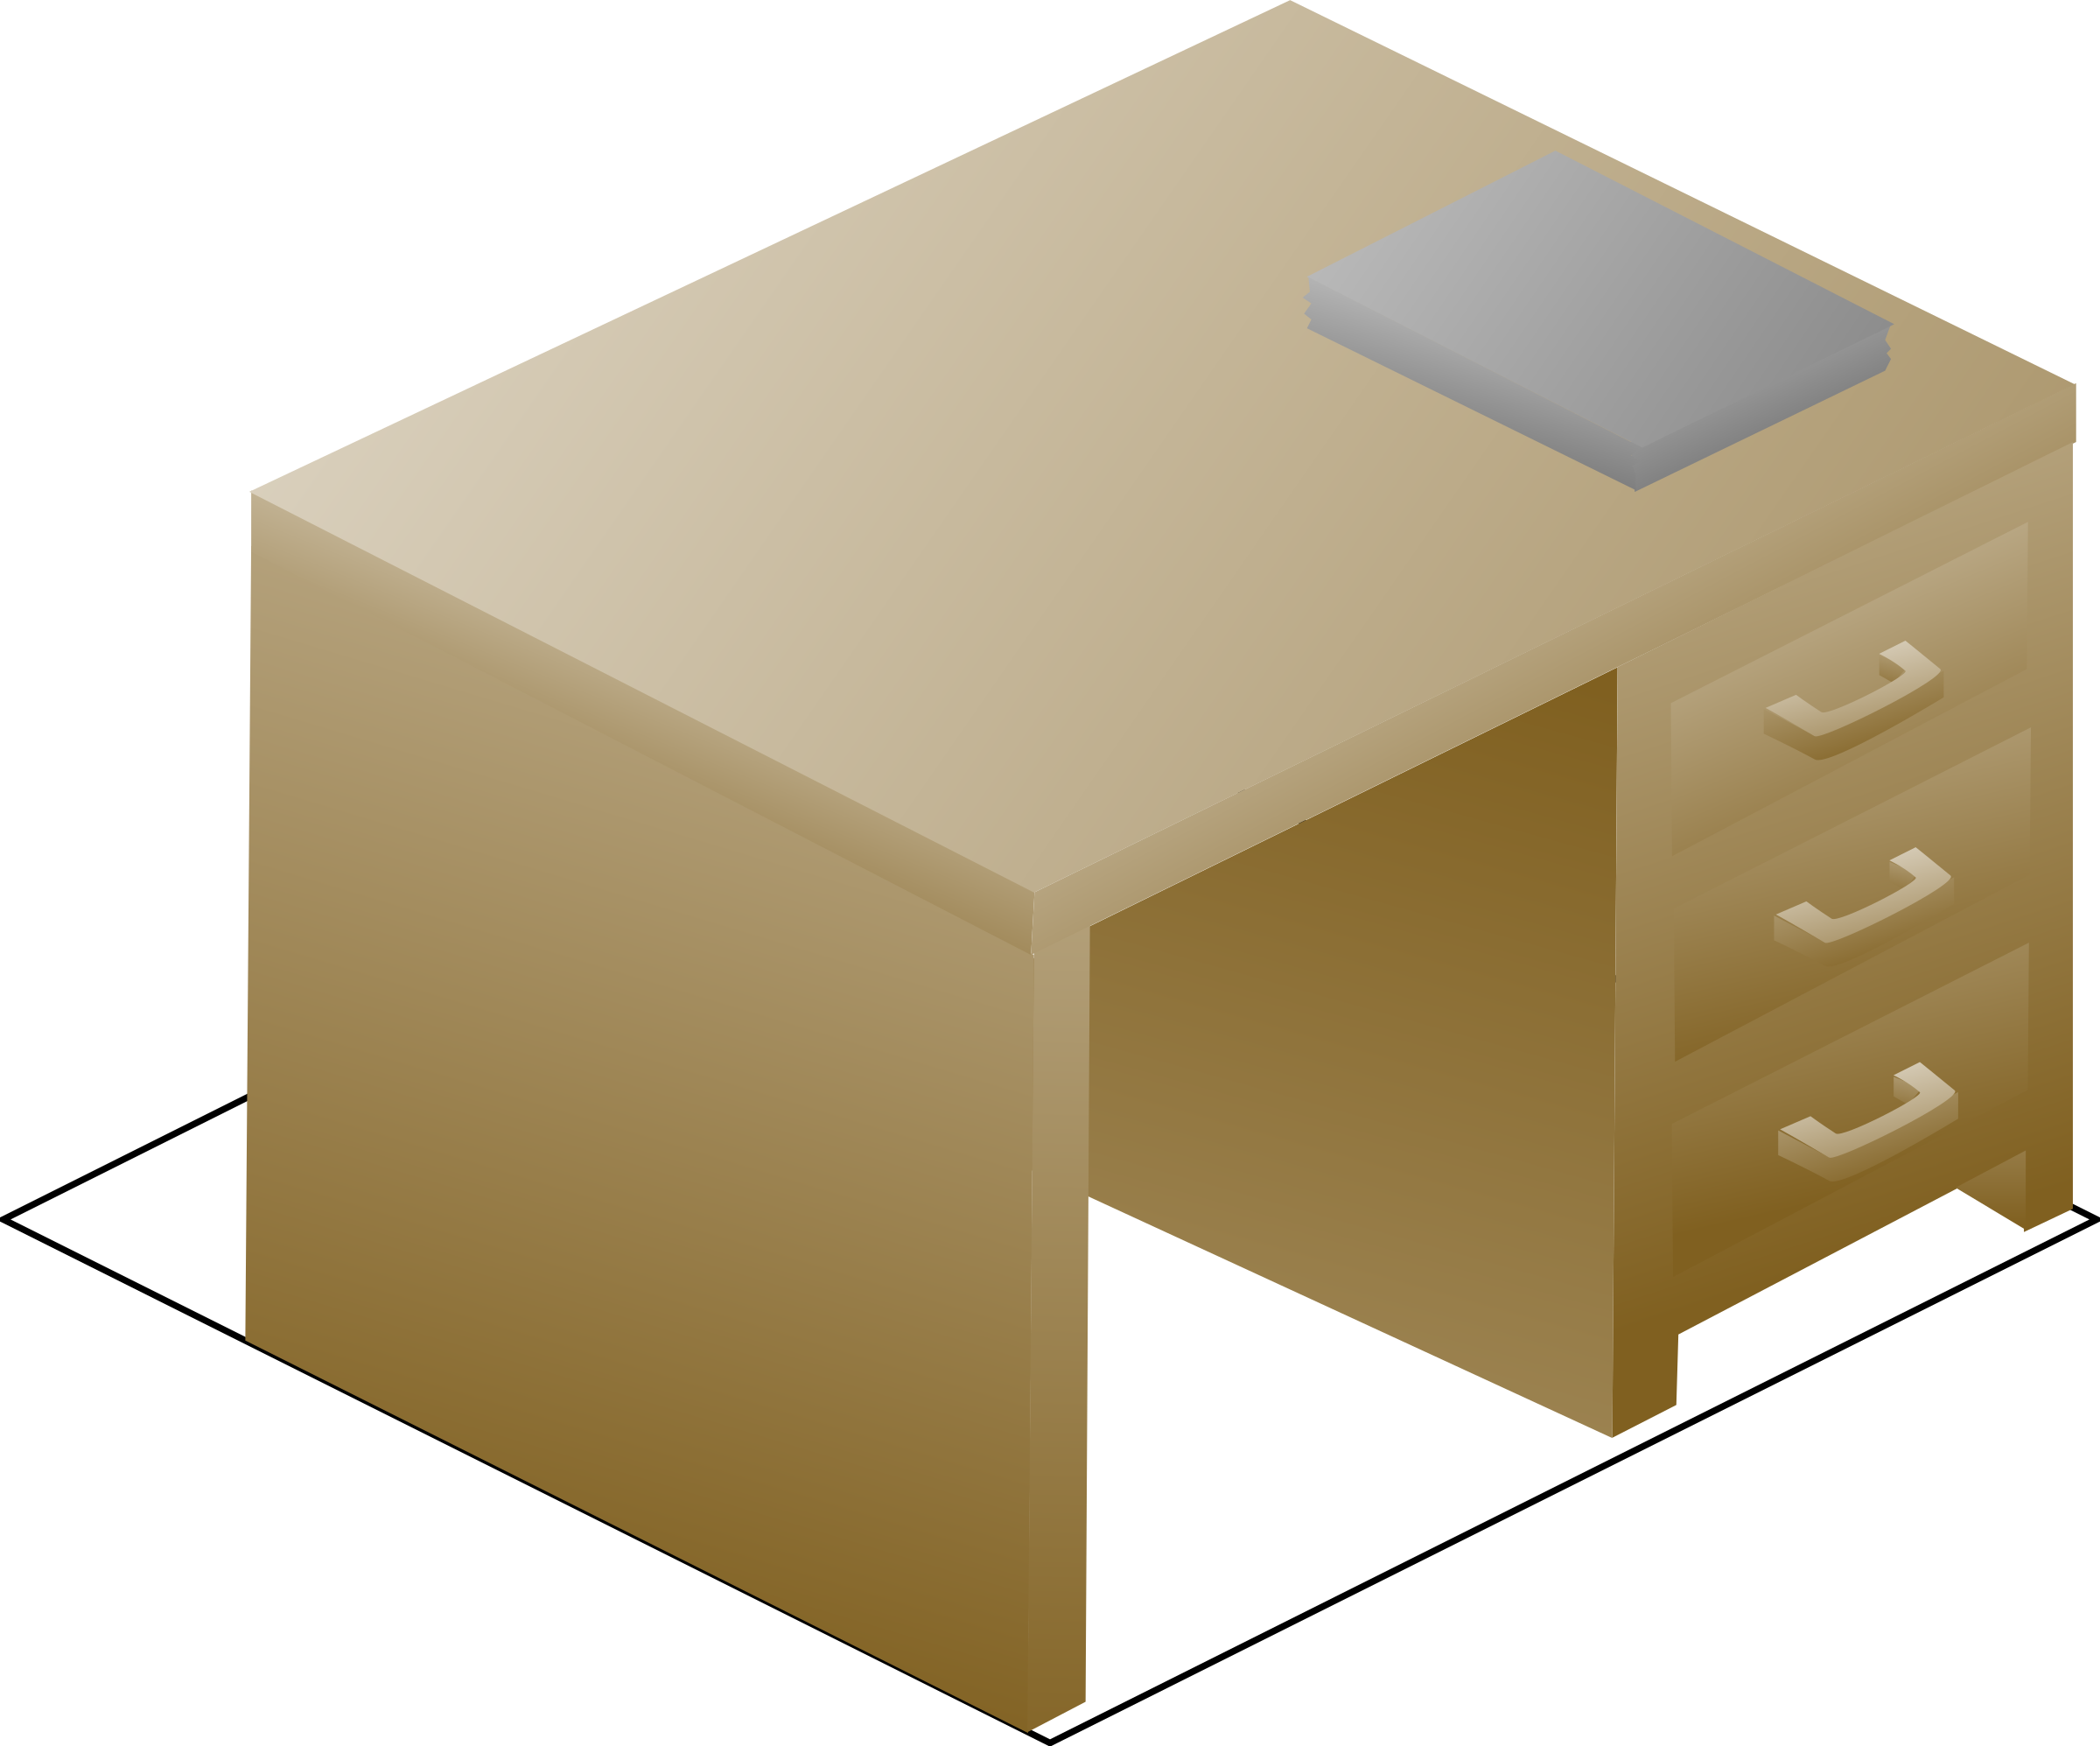 Clipart desk front. Isometric left view with